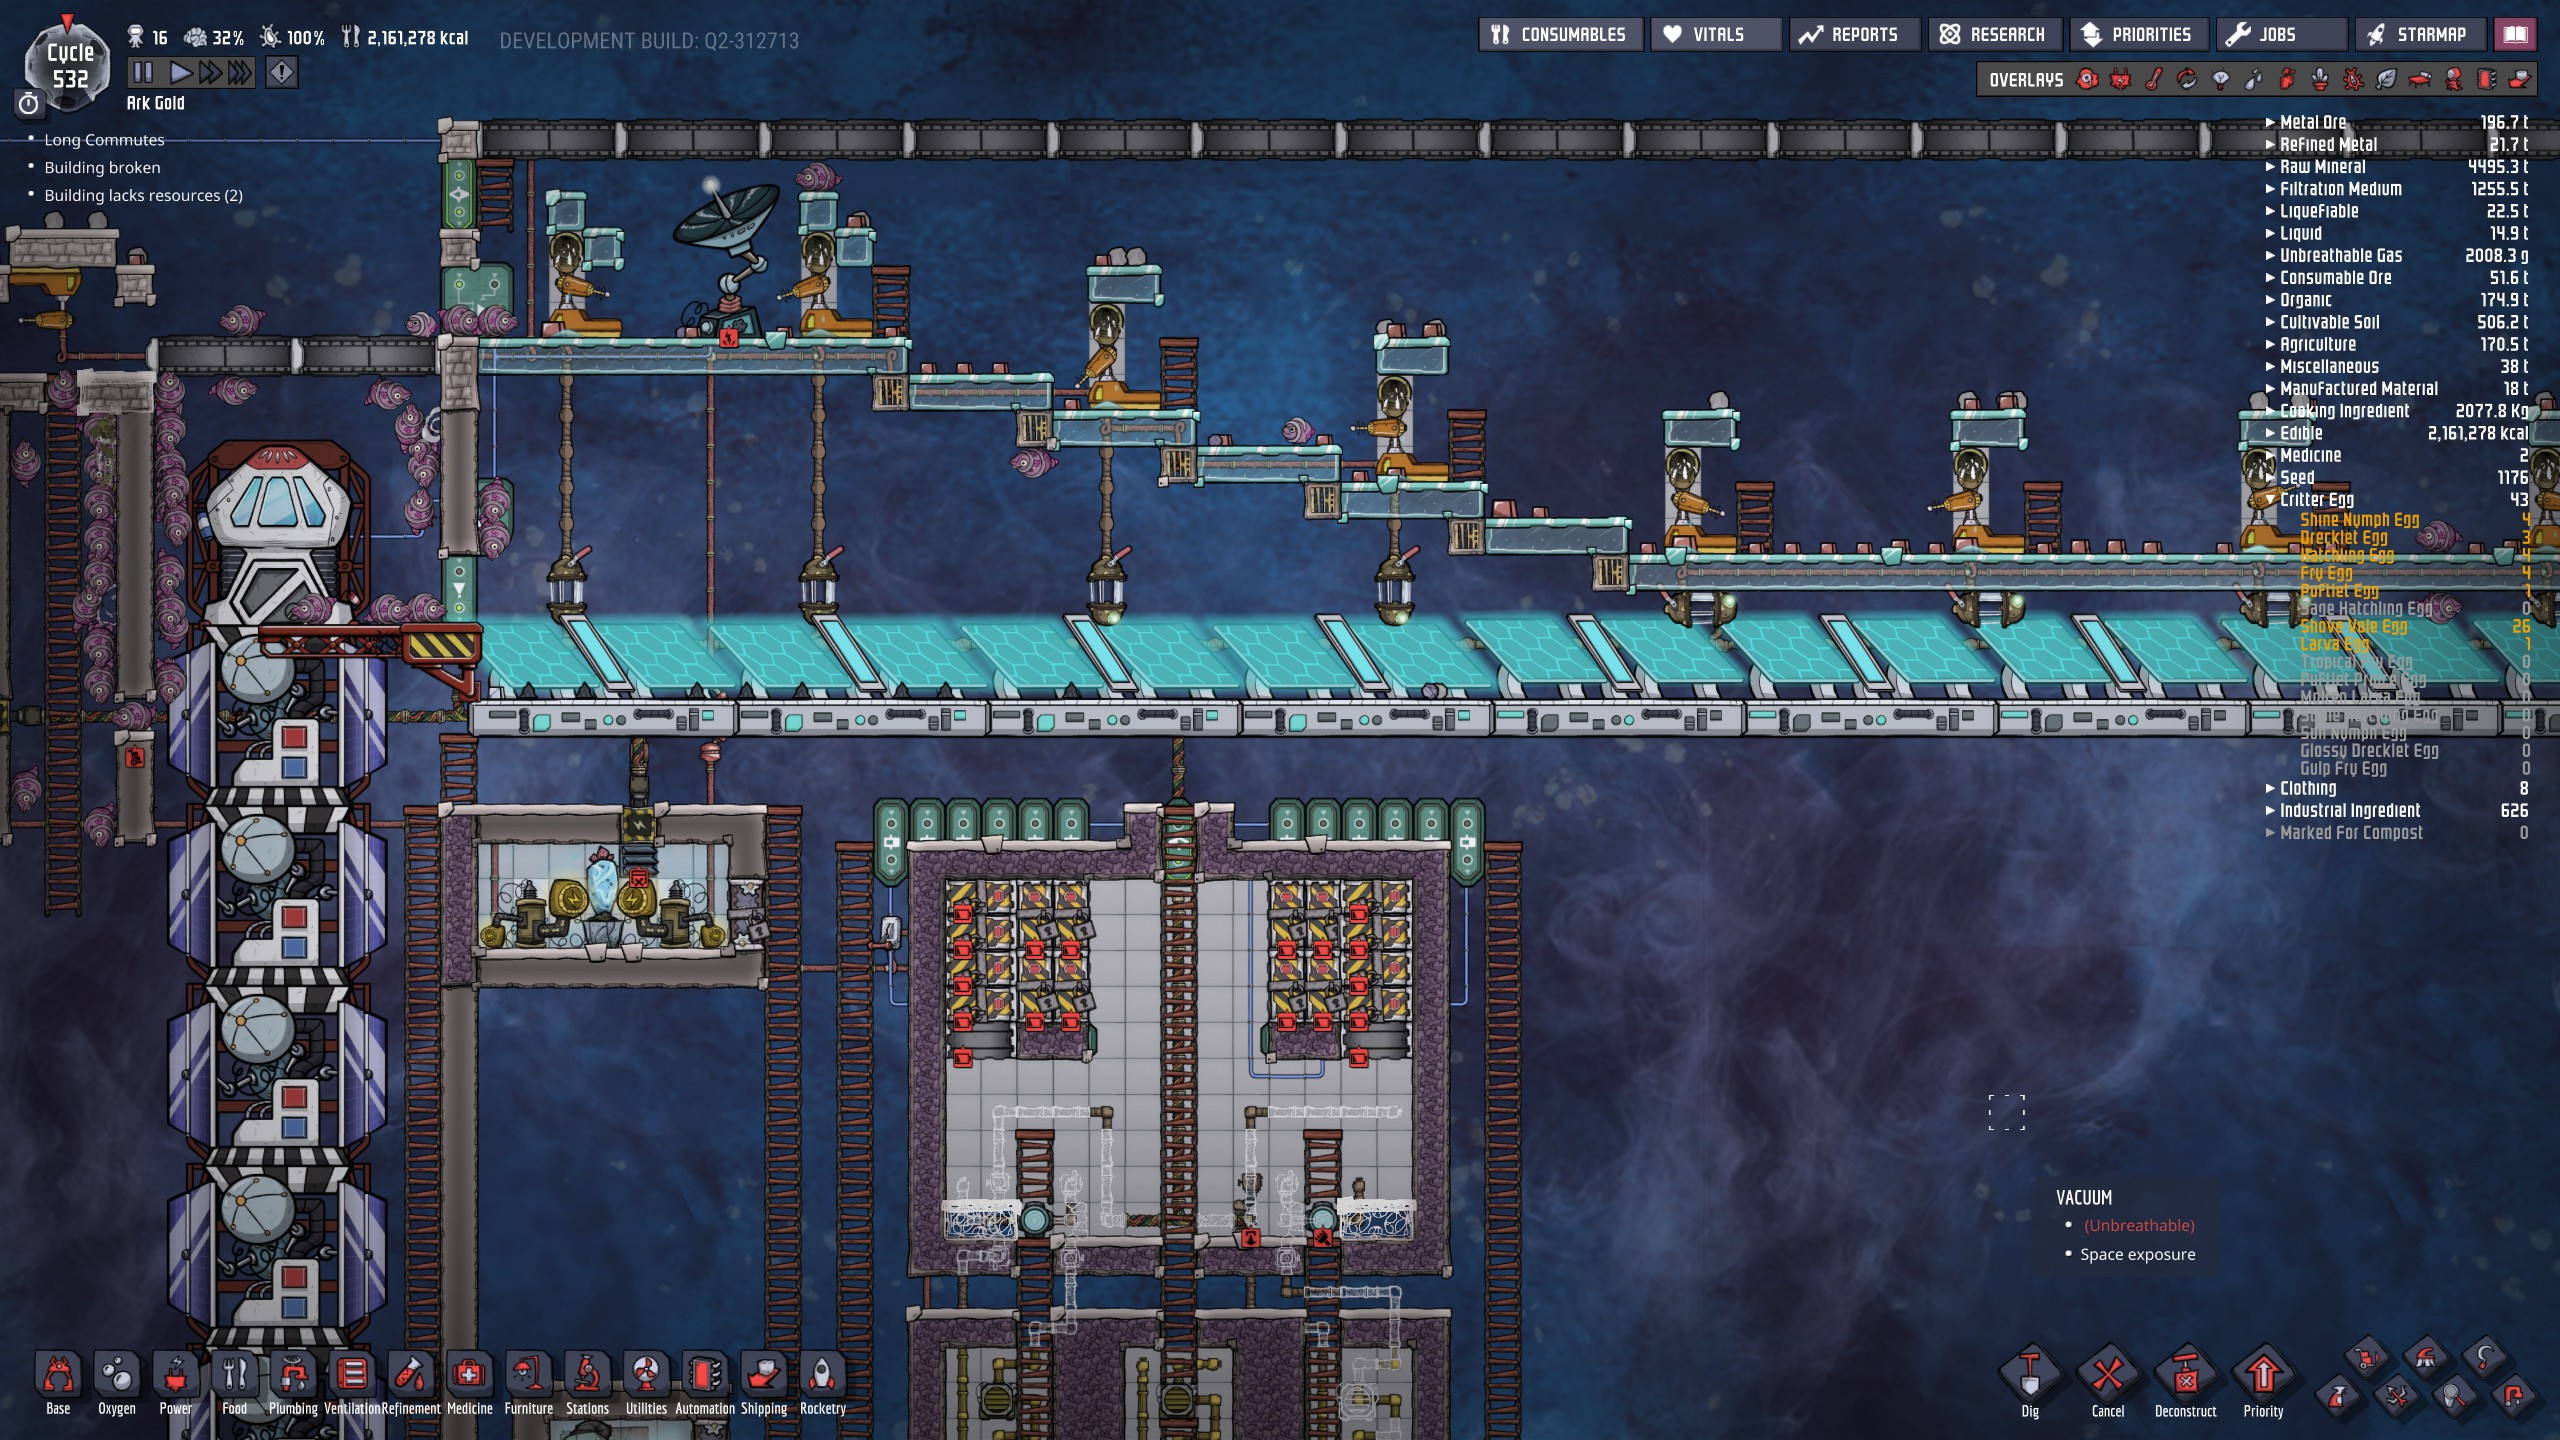 Shove Vole need fixing - [Oxygen Not Included] - Suggestions and